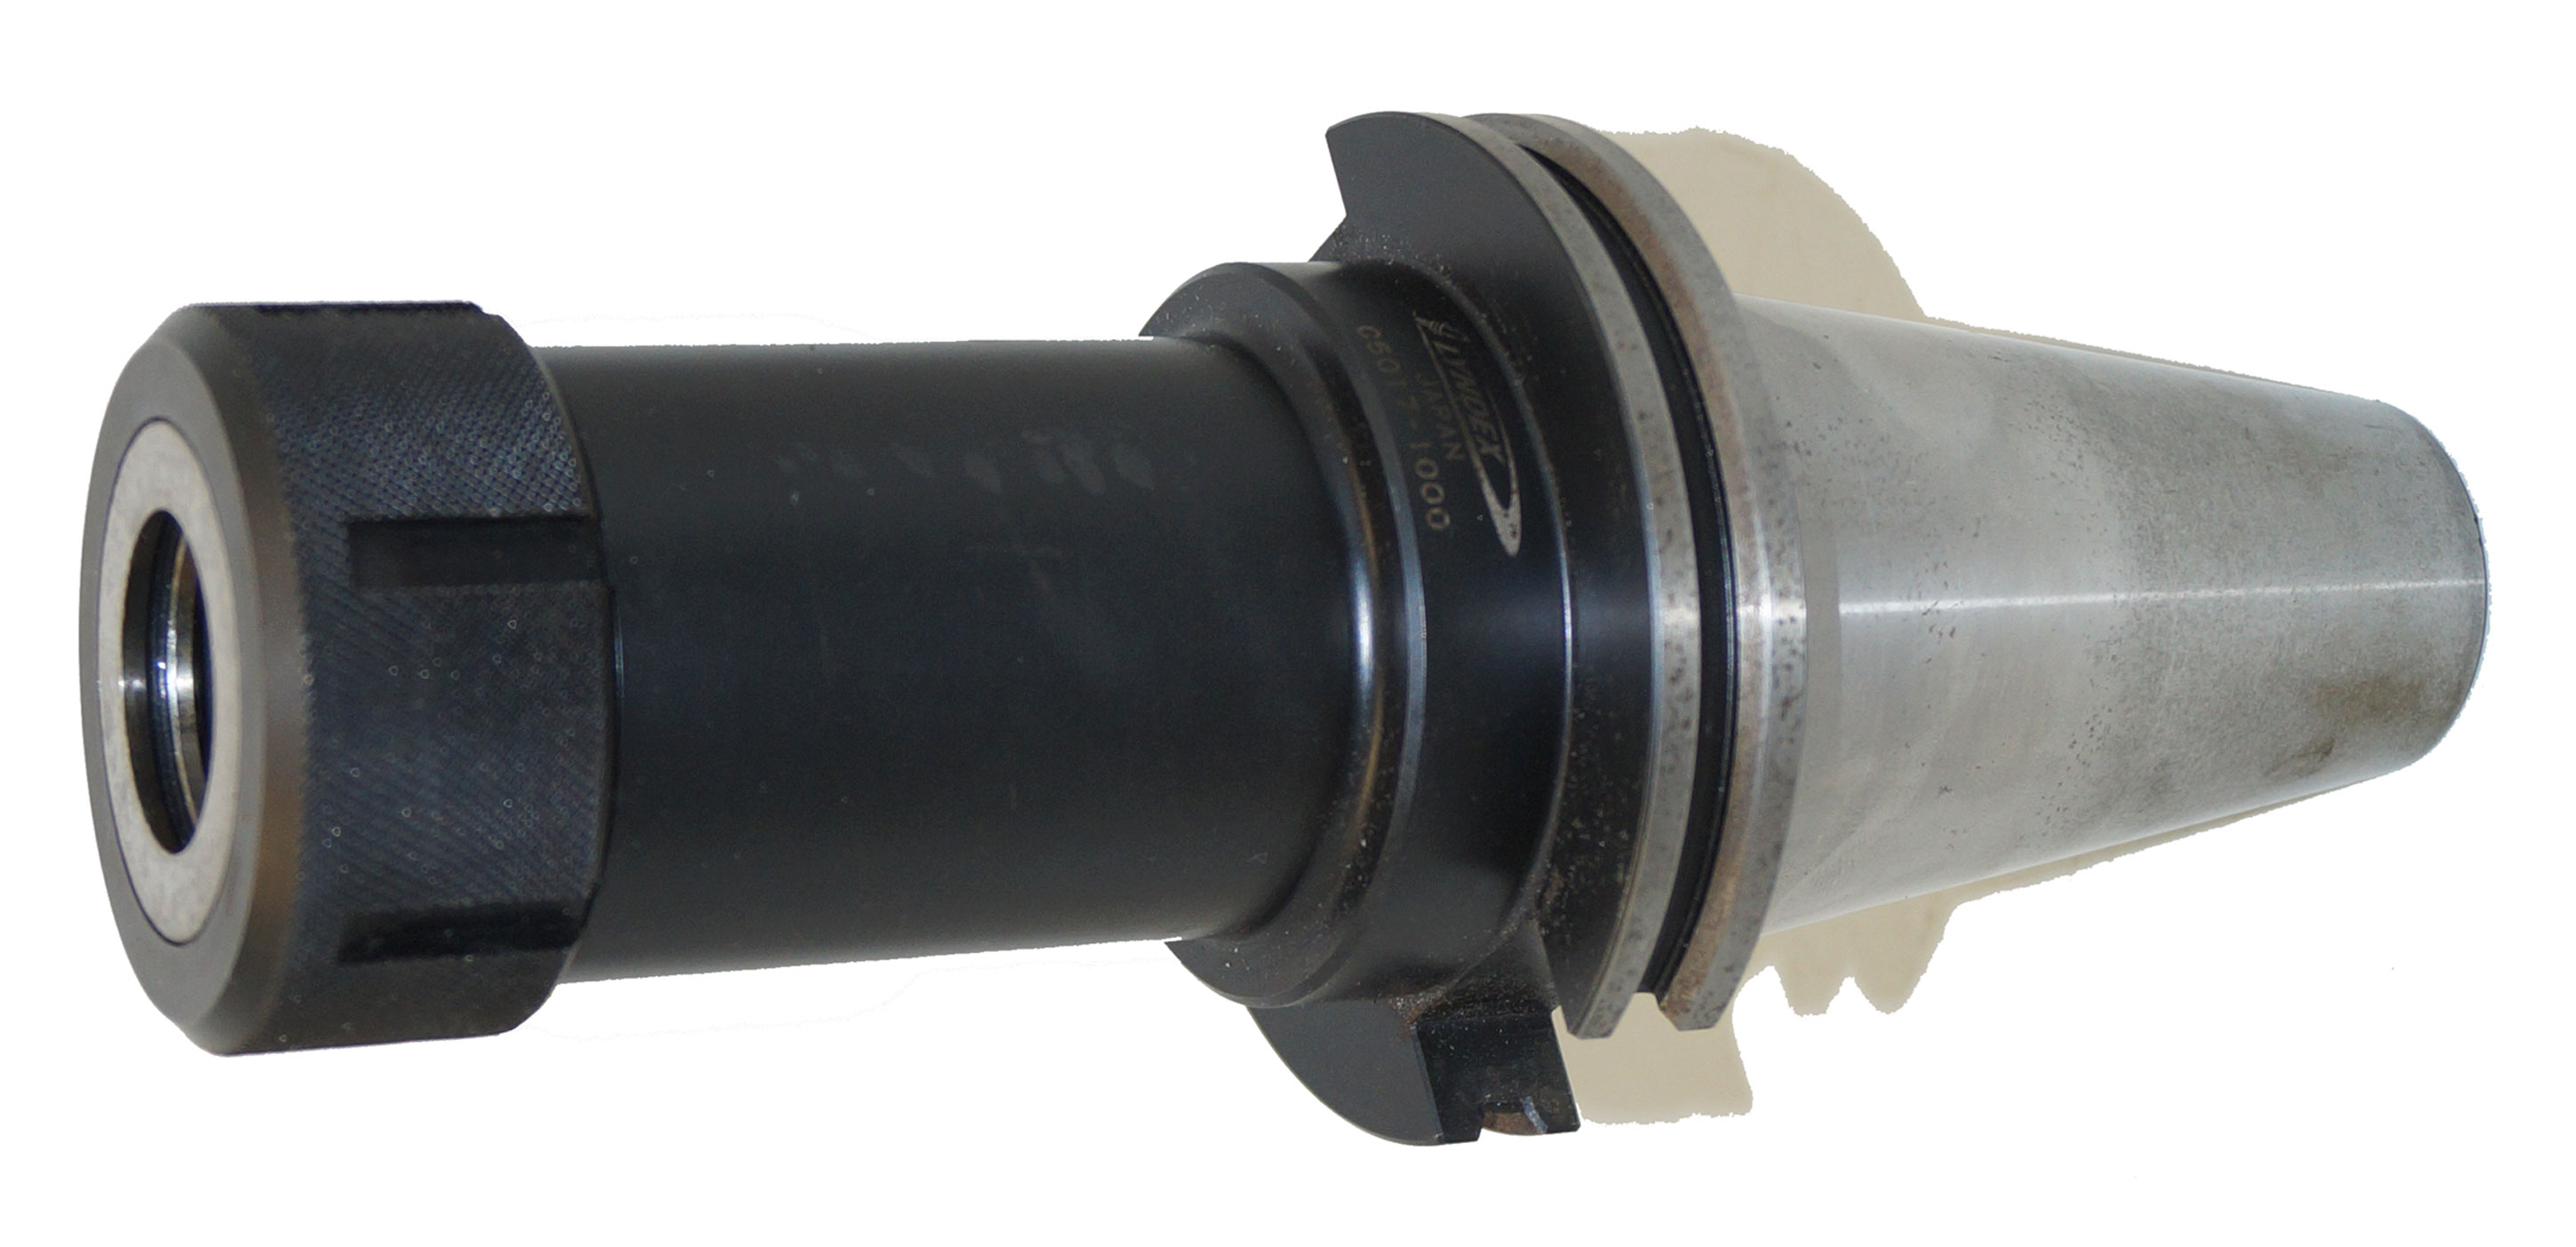 Cat50 TG100 Collet Chuck - Lyndex C5017-1000